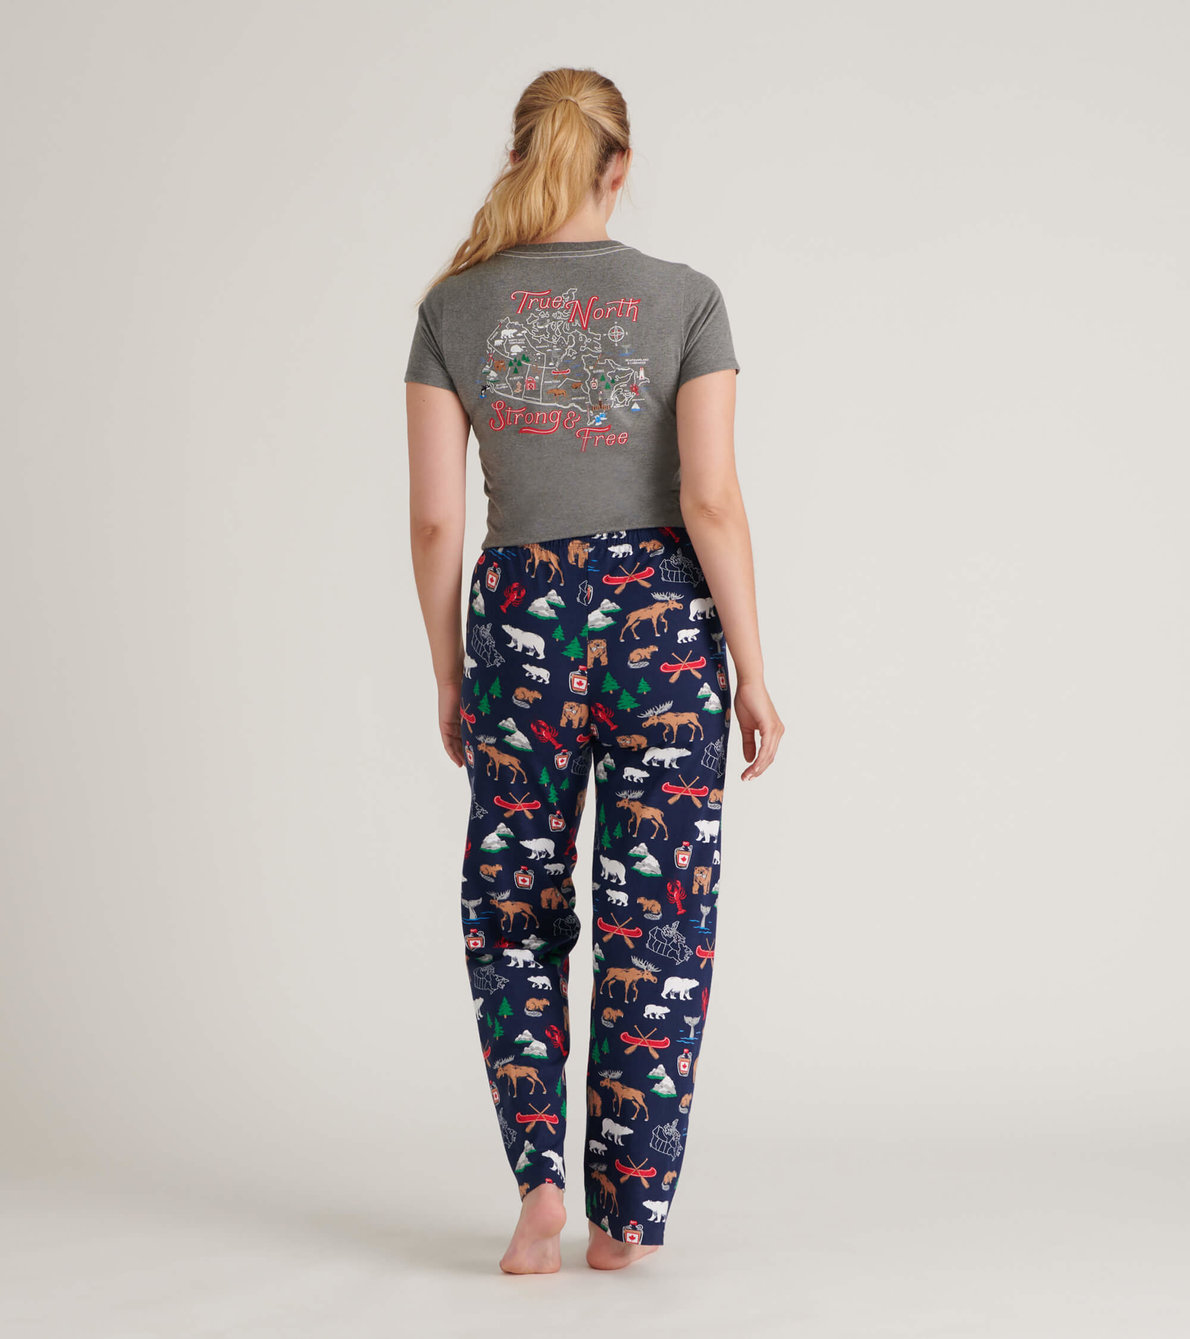 View larger image of True North Women's Tee and Pants Pajama Separates